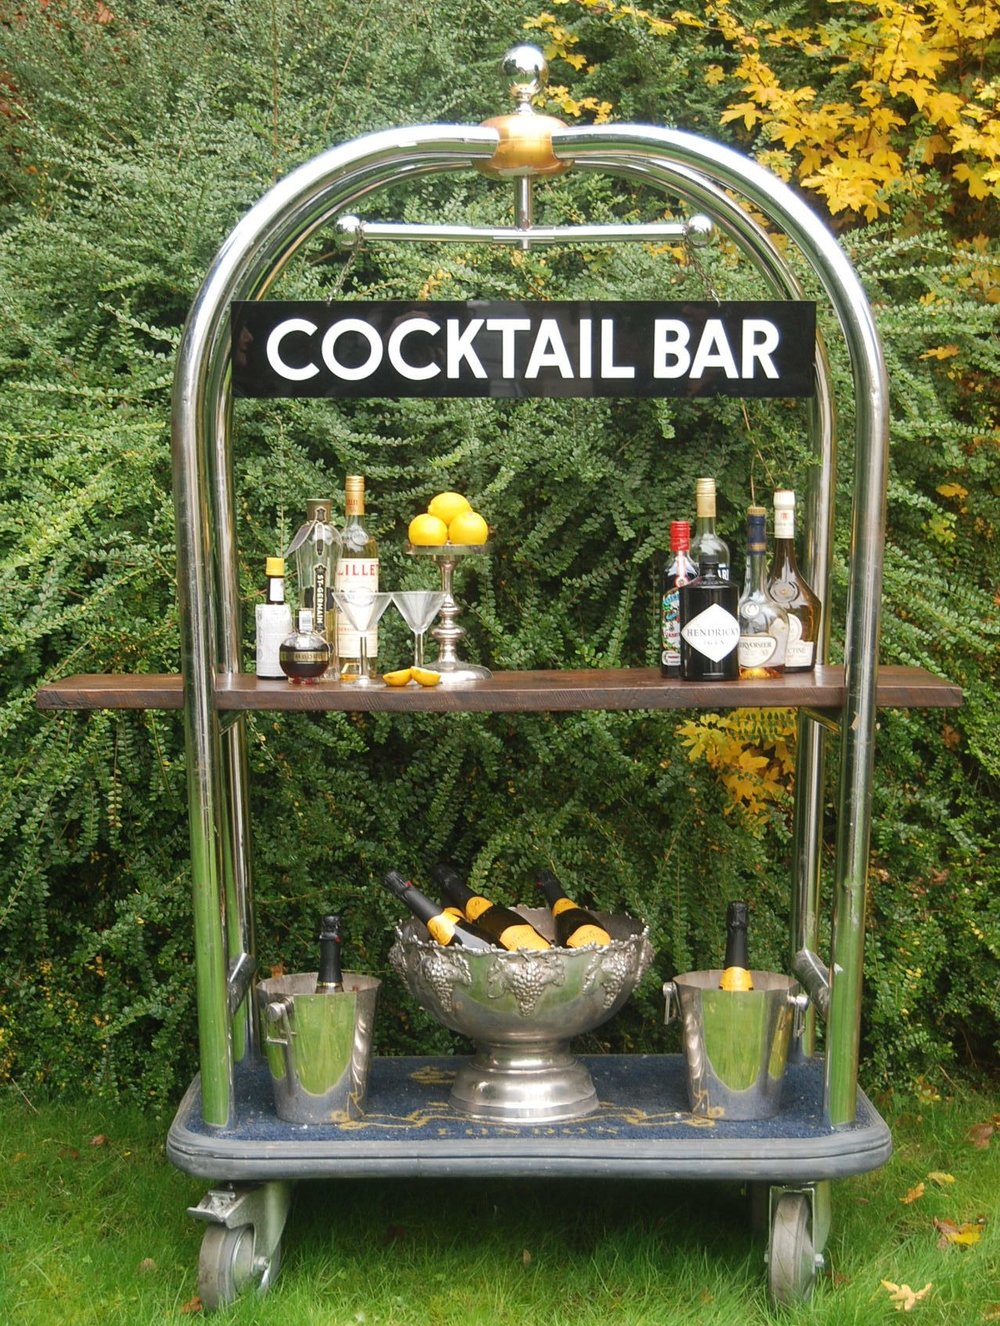 Ritz Trolley Luggage Cocktail Bar Set - includes: Ritz luggage trolley, 1950s cocktail bar sign, two copper champagne buckets, one champagne bowl, wire bottle holder and cocktail shaker - £100